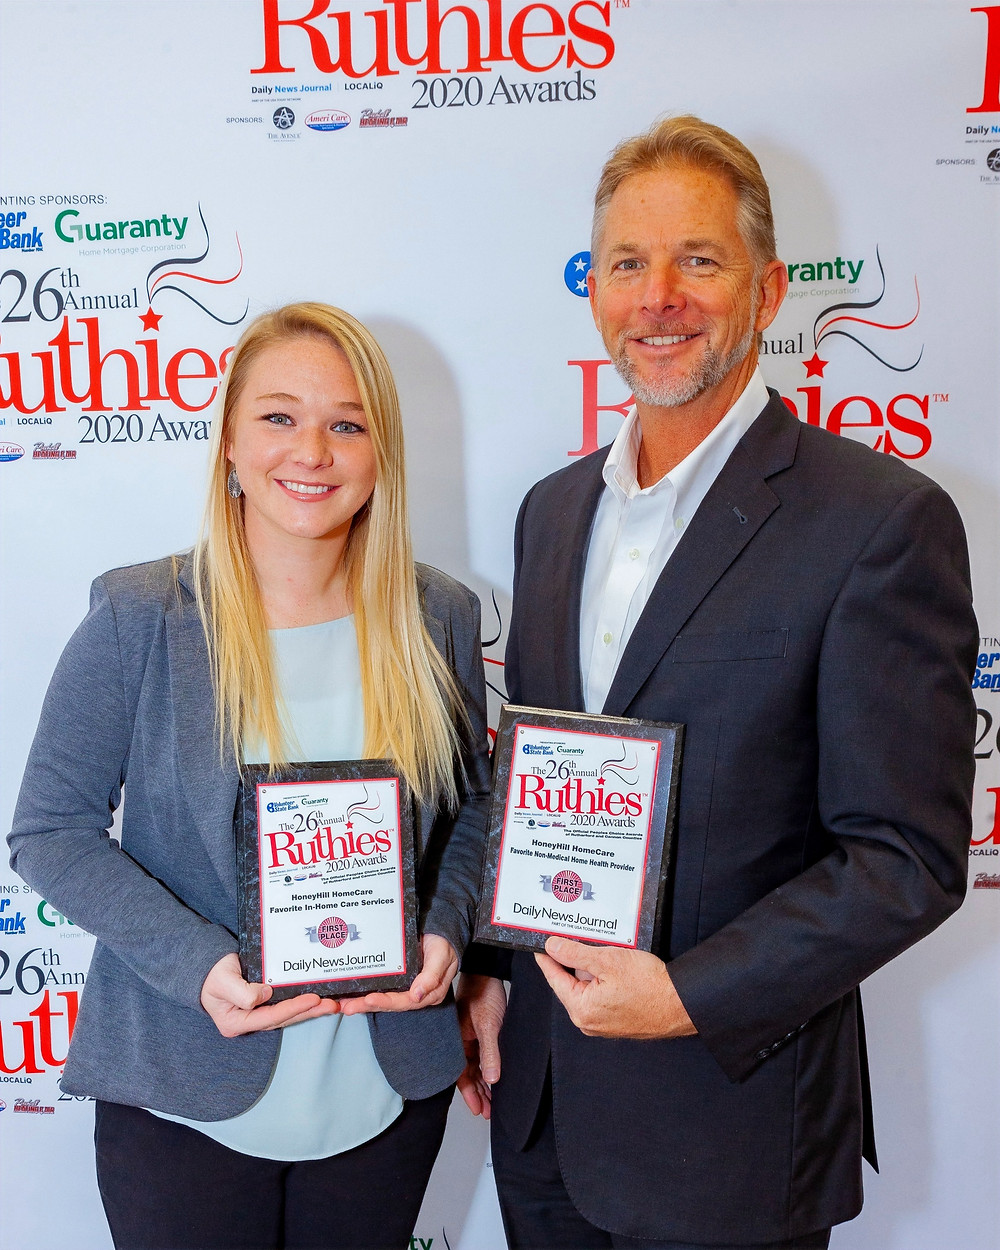 Mike & Becca Cutter Accepting 2 Ruthies Awards for HoneyHill HomeCare